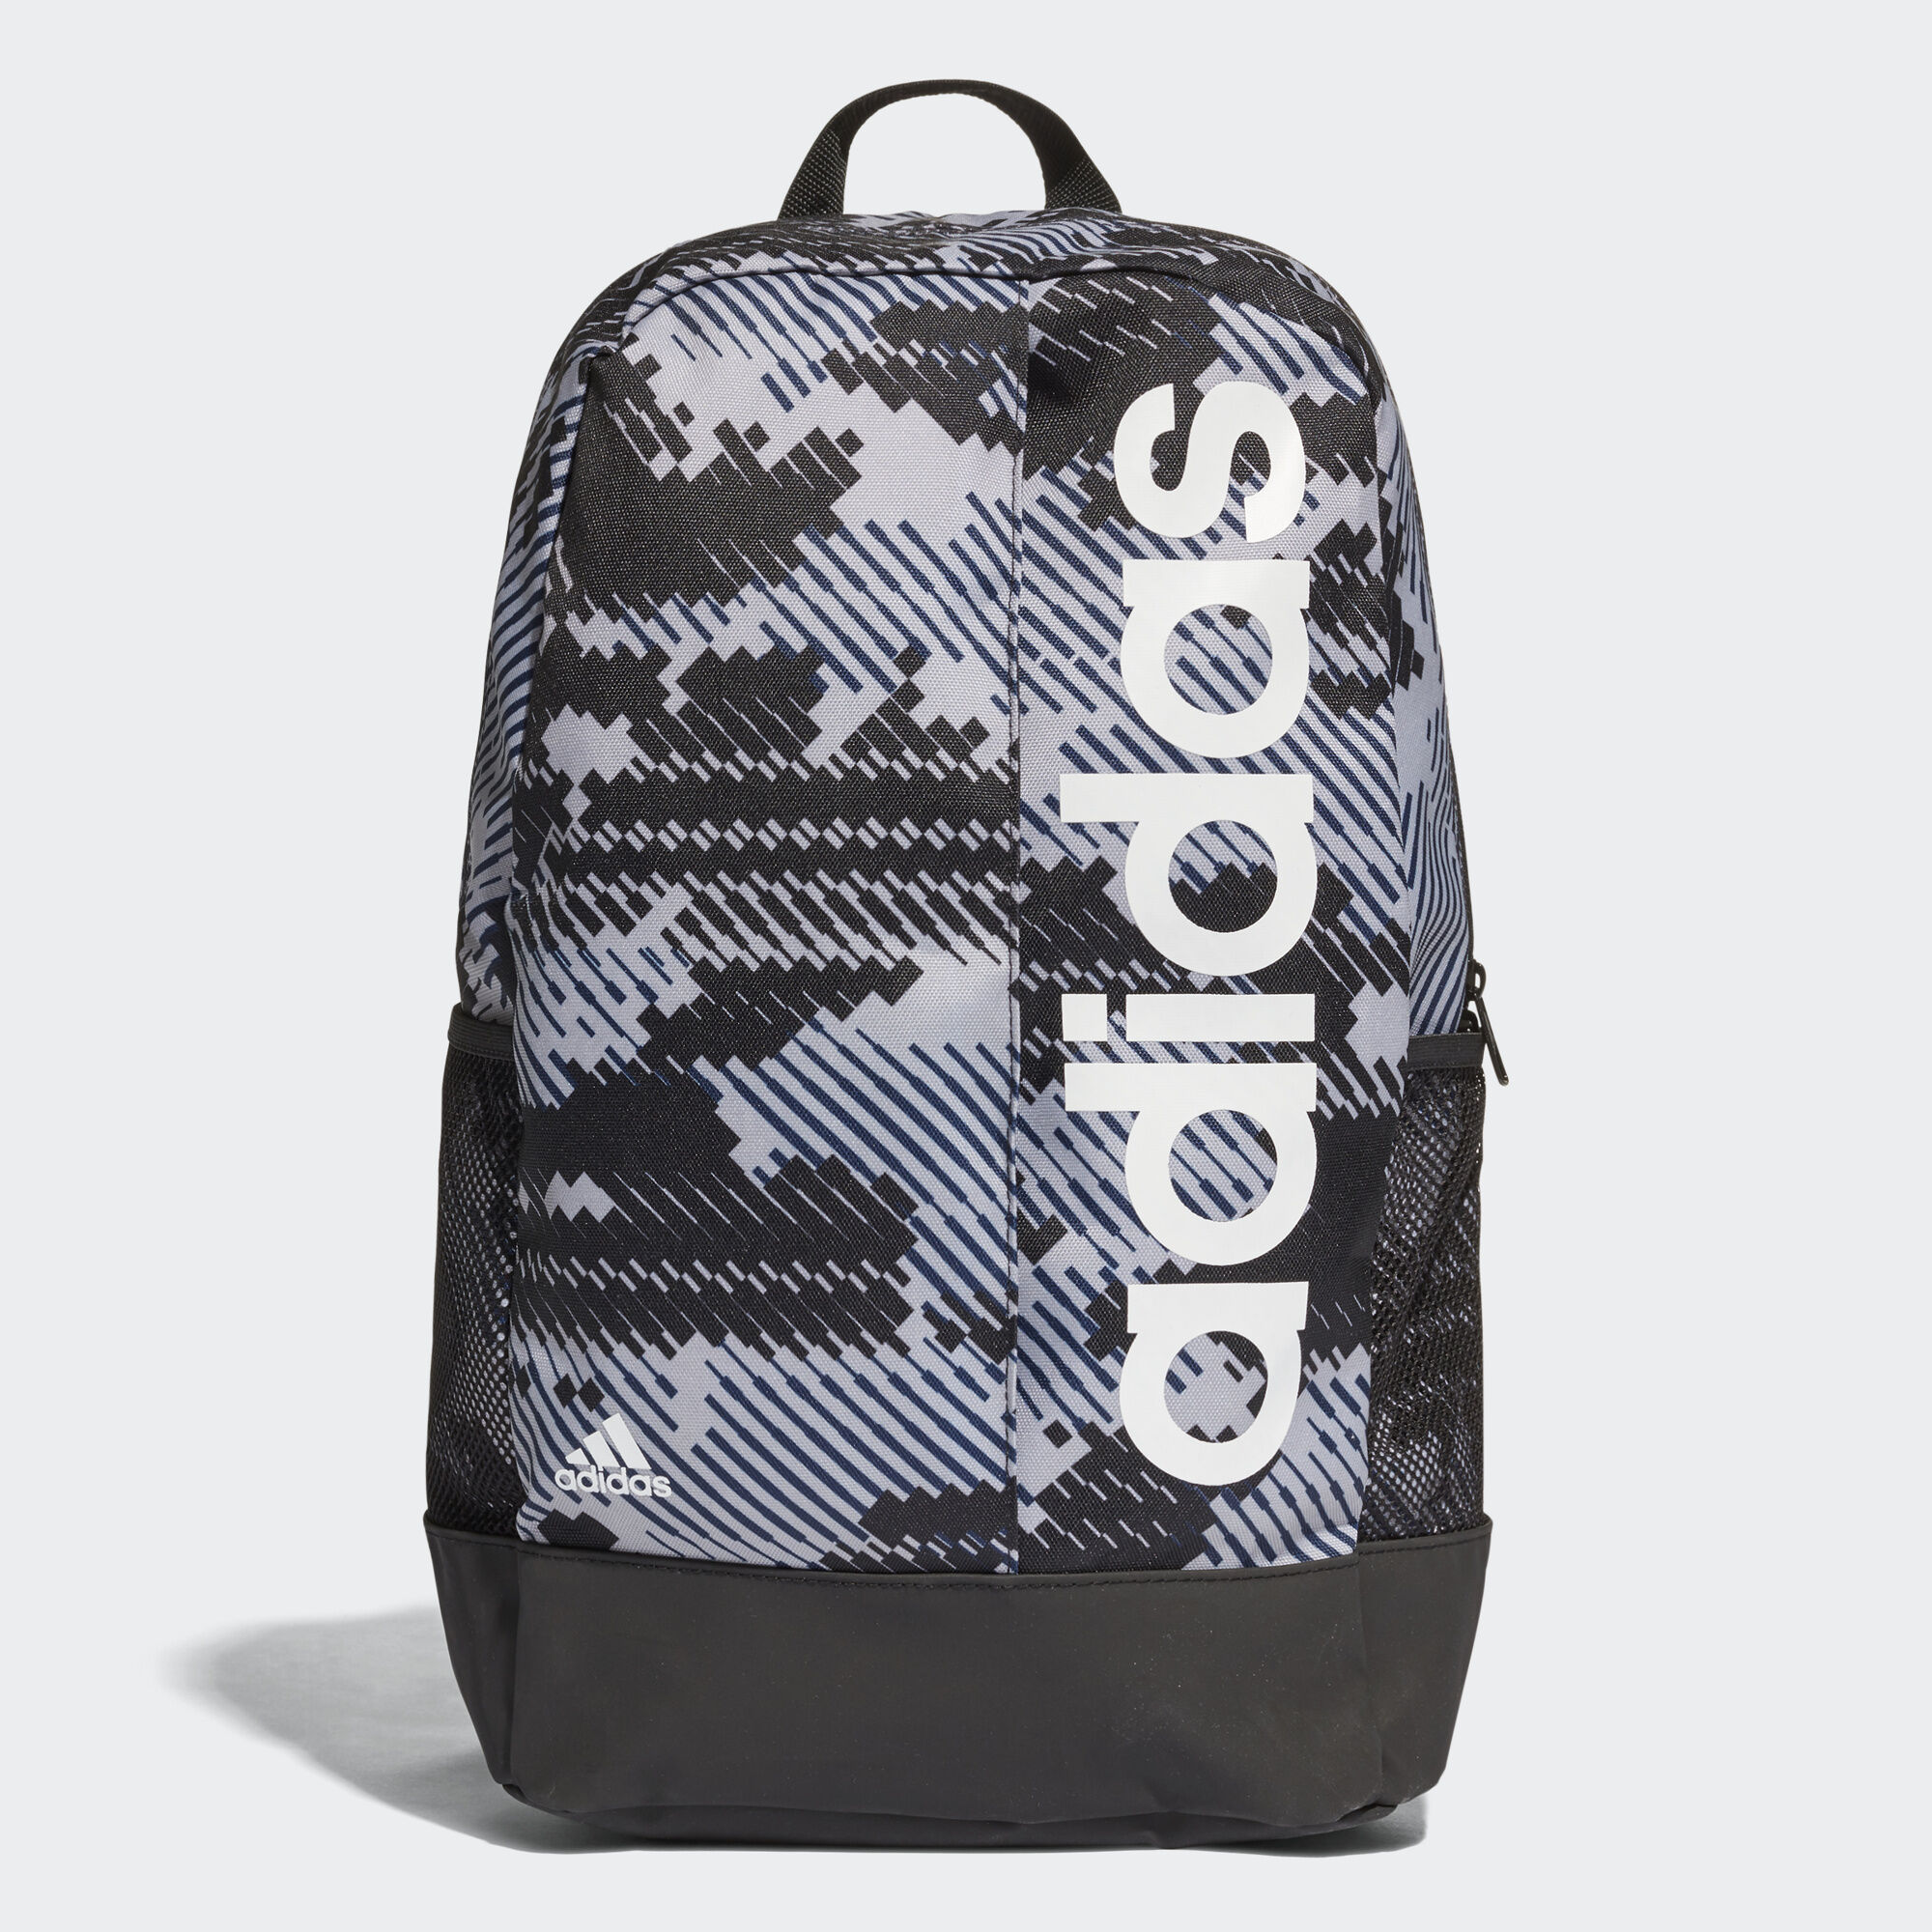 a2e13703d11d Buy adidas leopard backpack   OFF51% Discounted